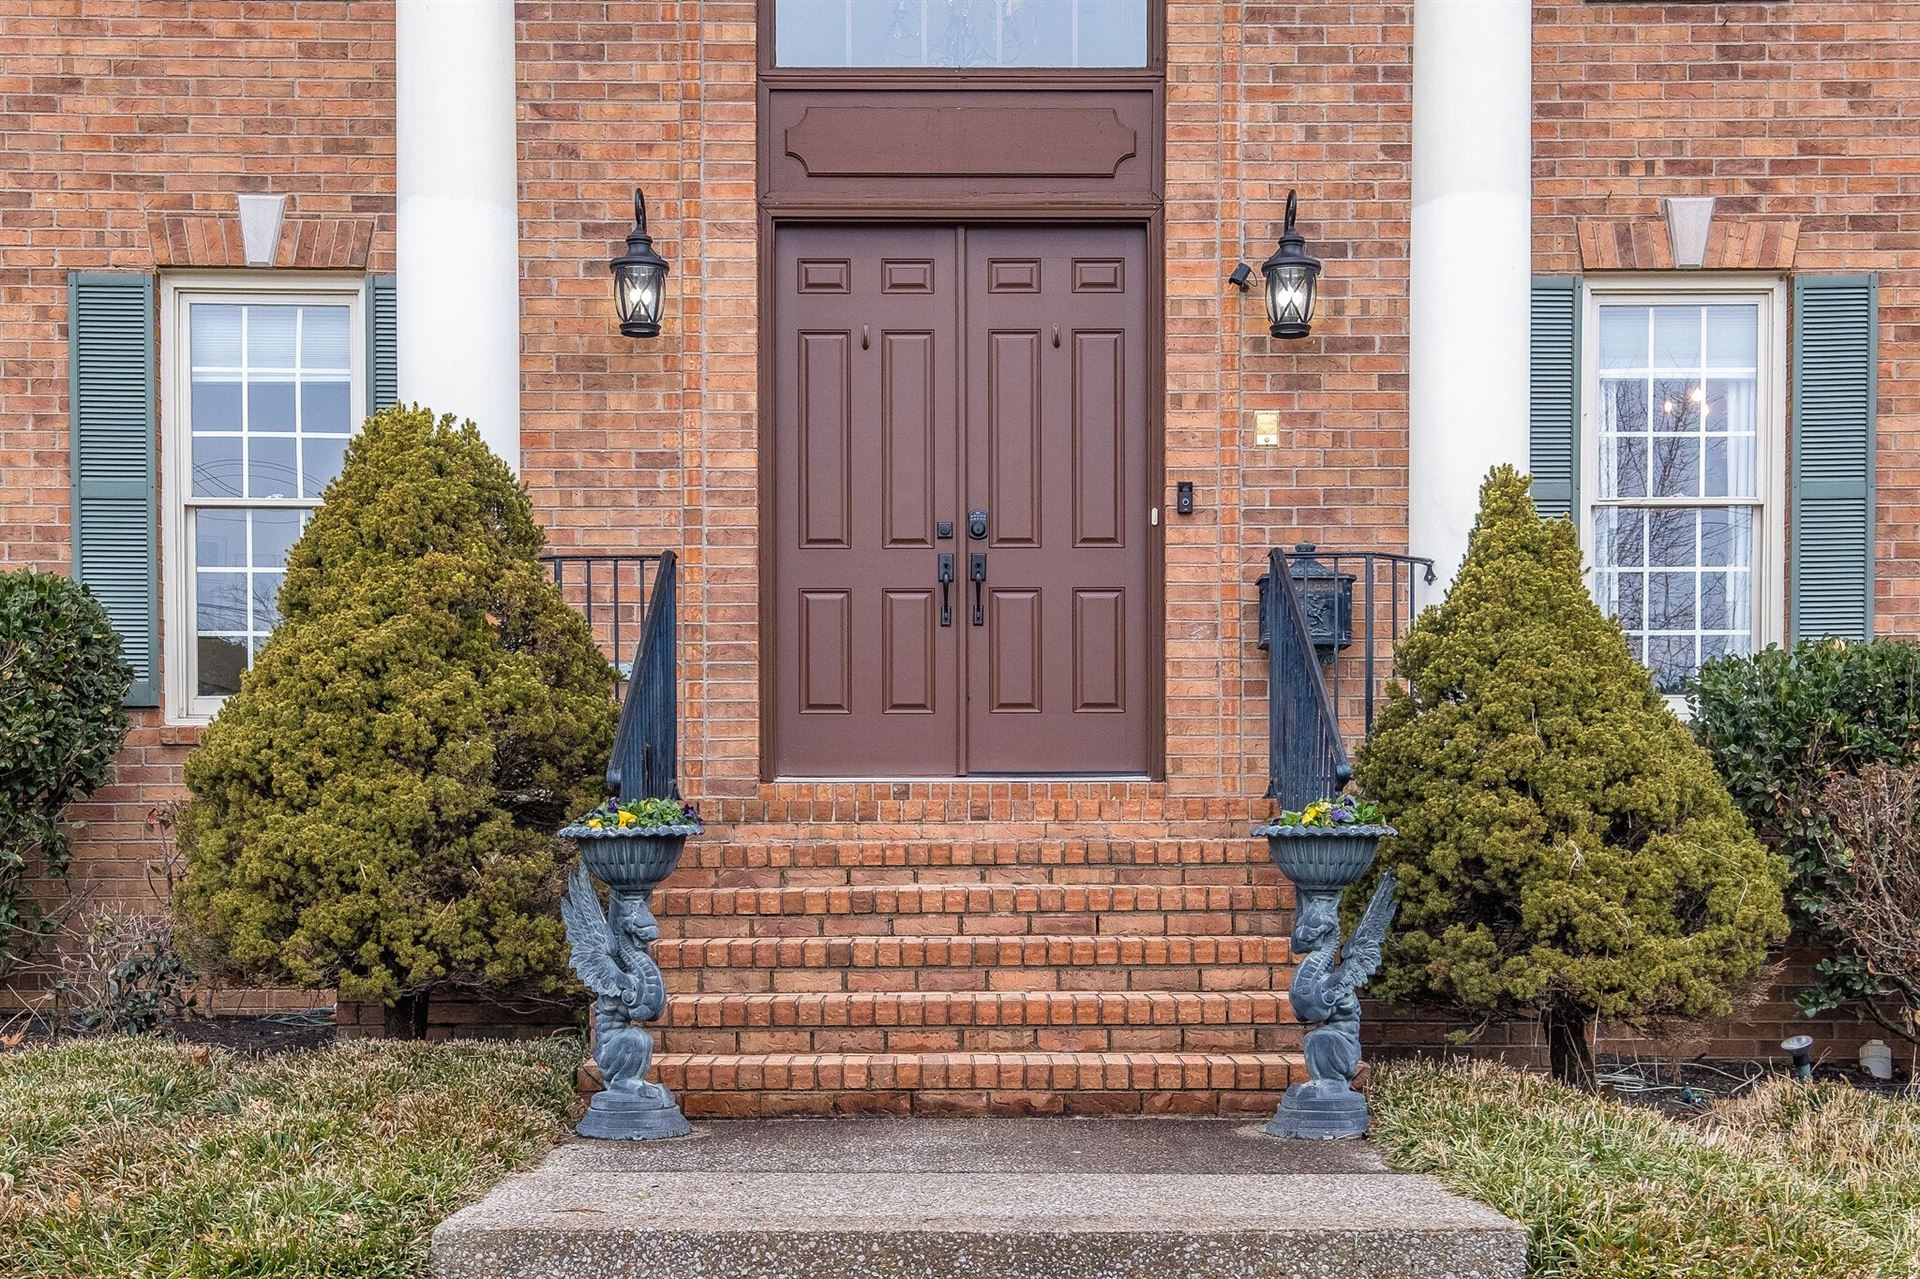 Photo of 9002 Old Smyrna Rd, Brentwood, TN 37027 (MLS # 2230065)